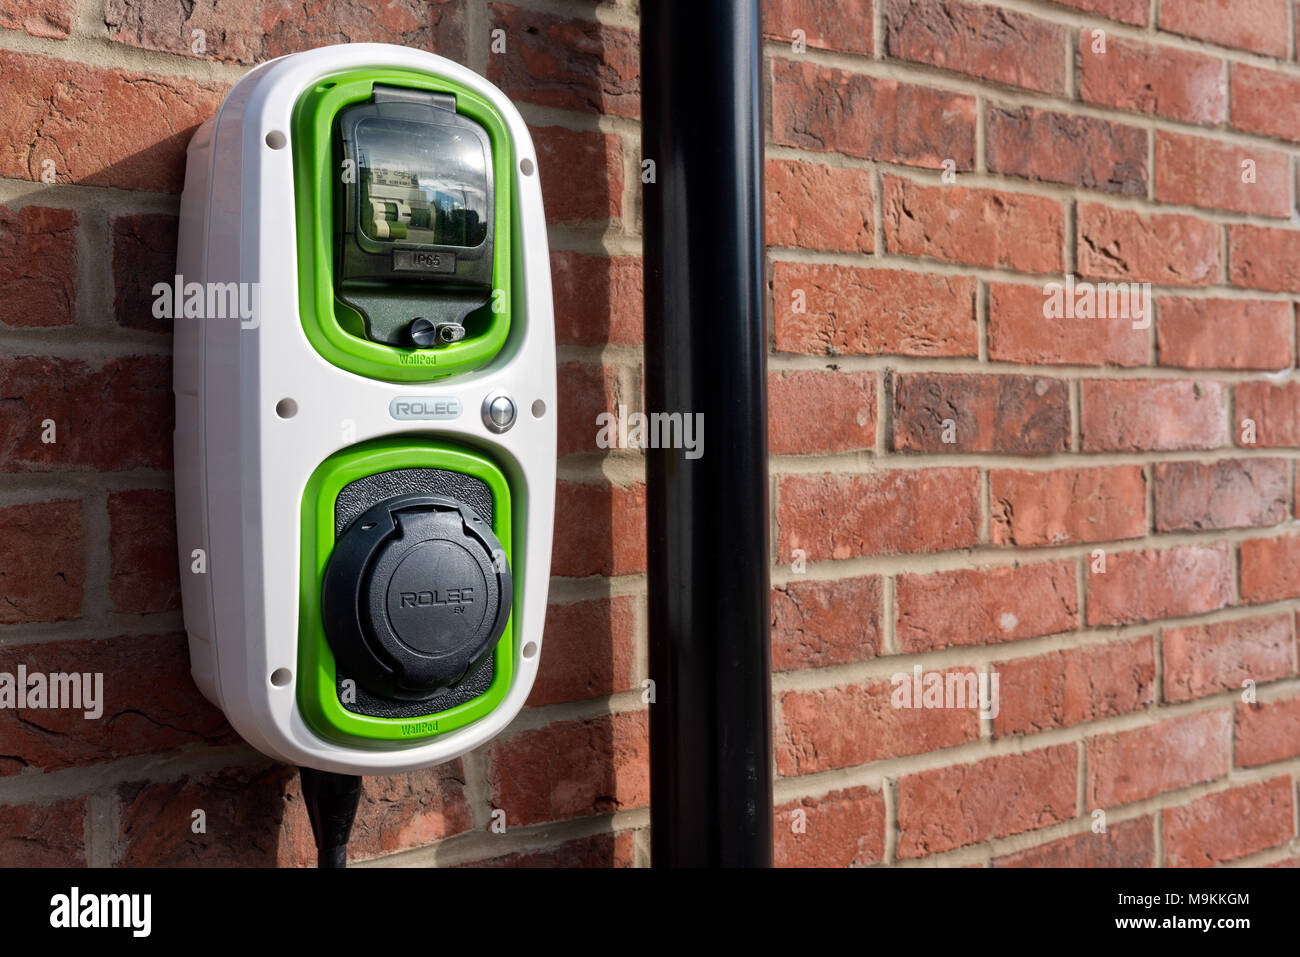 A Rolec, domestic, electric car charging point on the wall of a home. - Stock Image